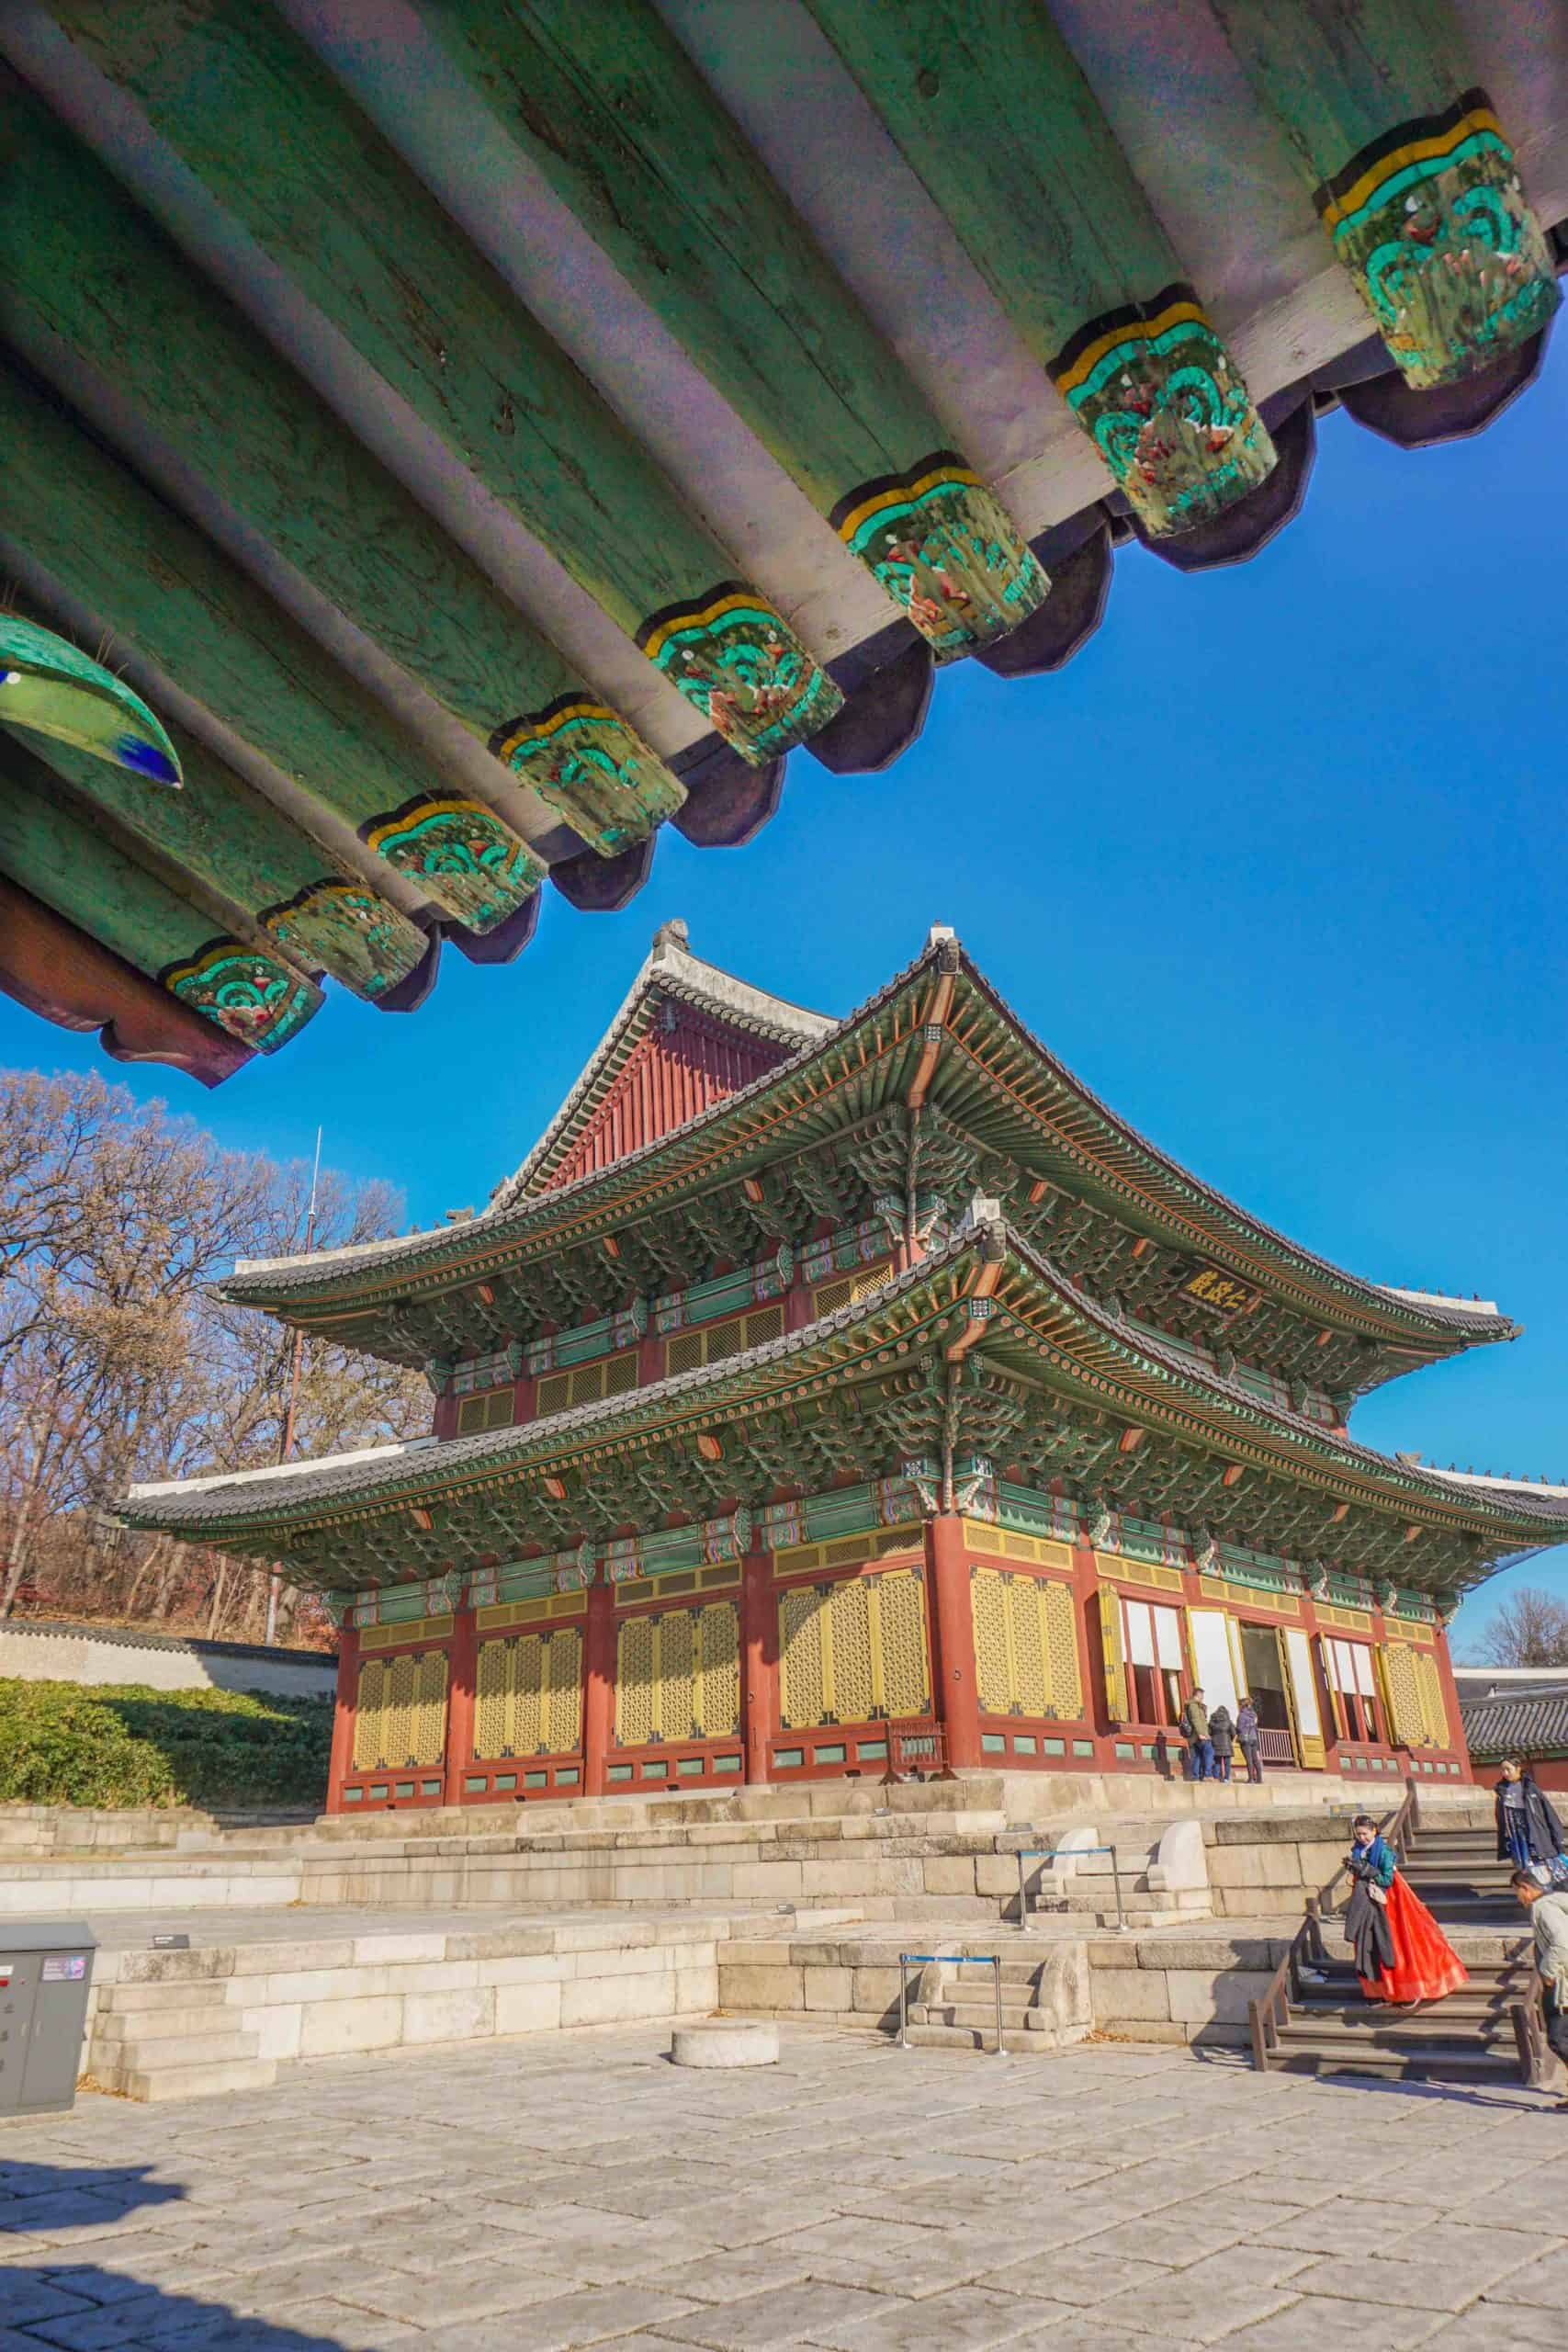 Places to visit in Korea during winter